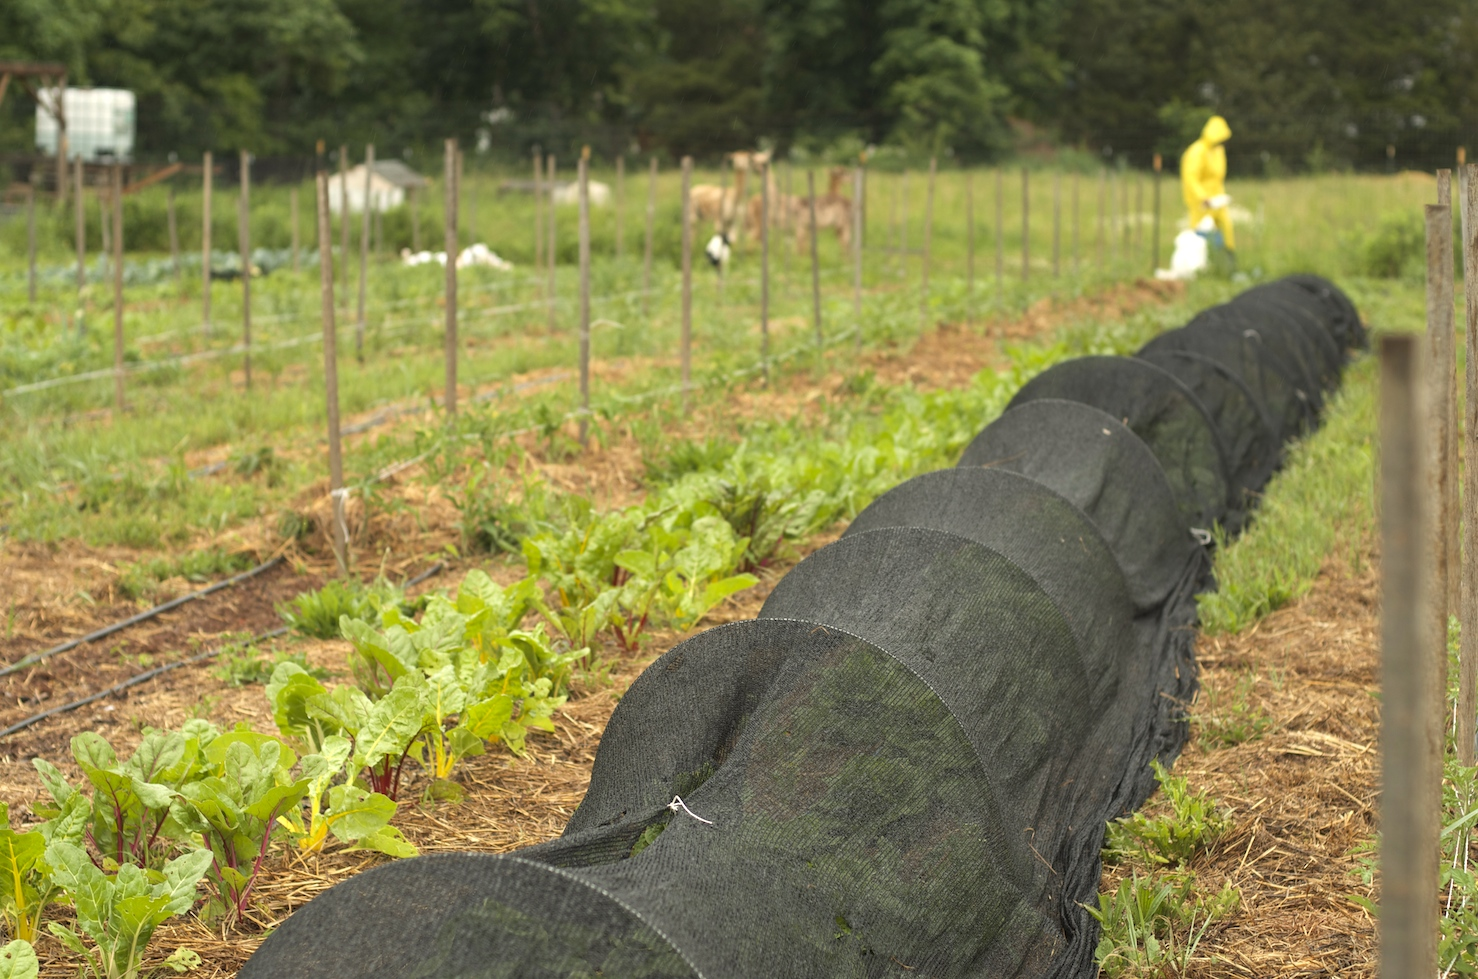 [Looking down rows of mesh hoops and leafy green vegetables. A person in yellow rain gear is visible in the distance.]